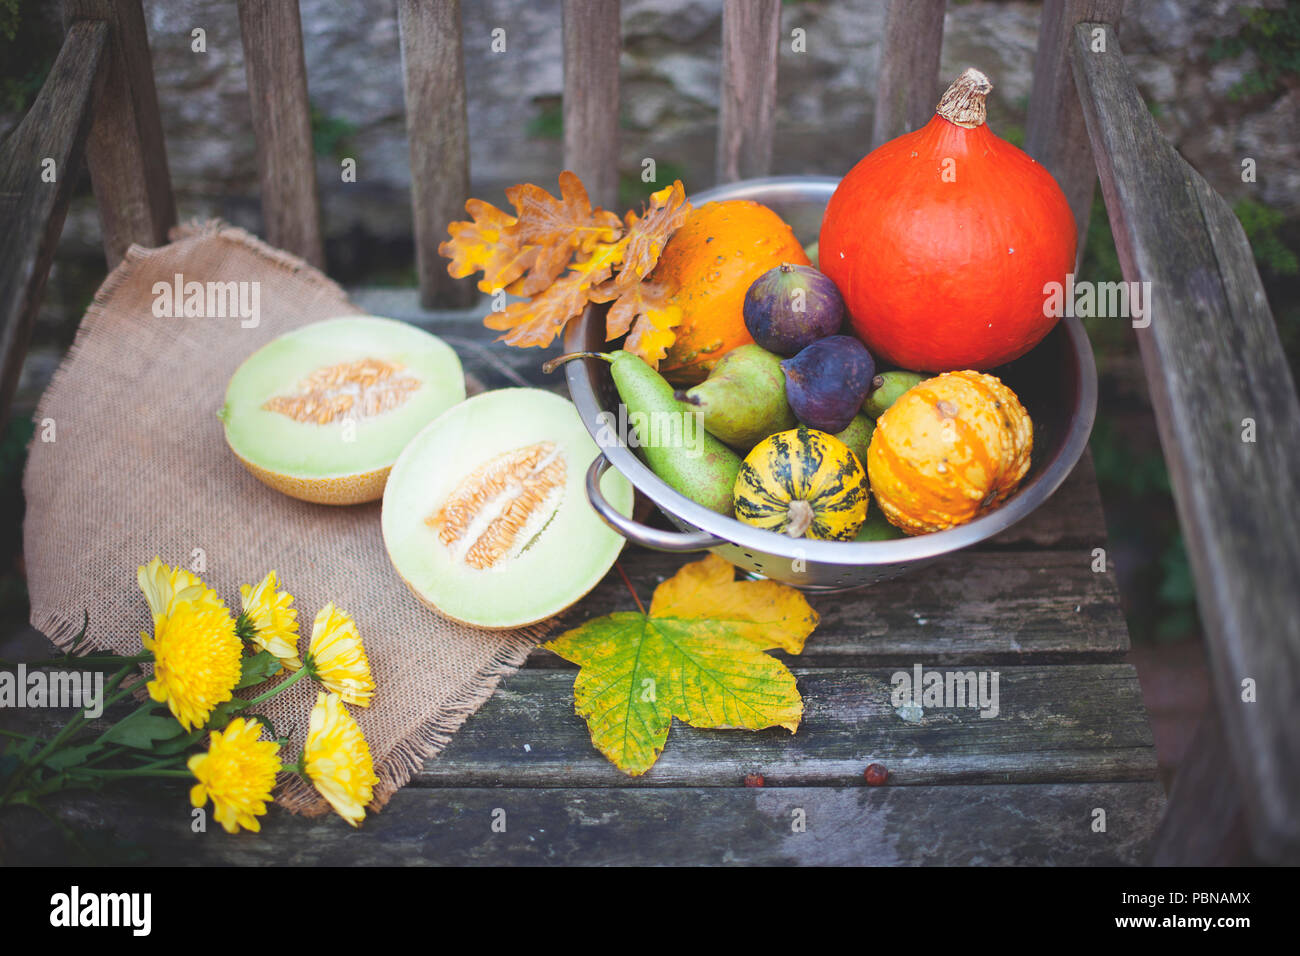 Autumn nature. Fall fruit on wood. Thanksgiving. autumn vegetables on an old chair in the garden, free space for text, yellow flowers Stock Photo